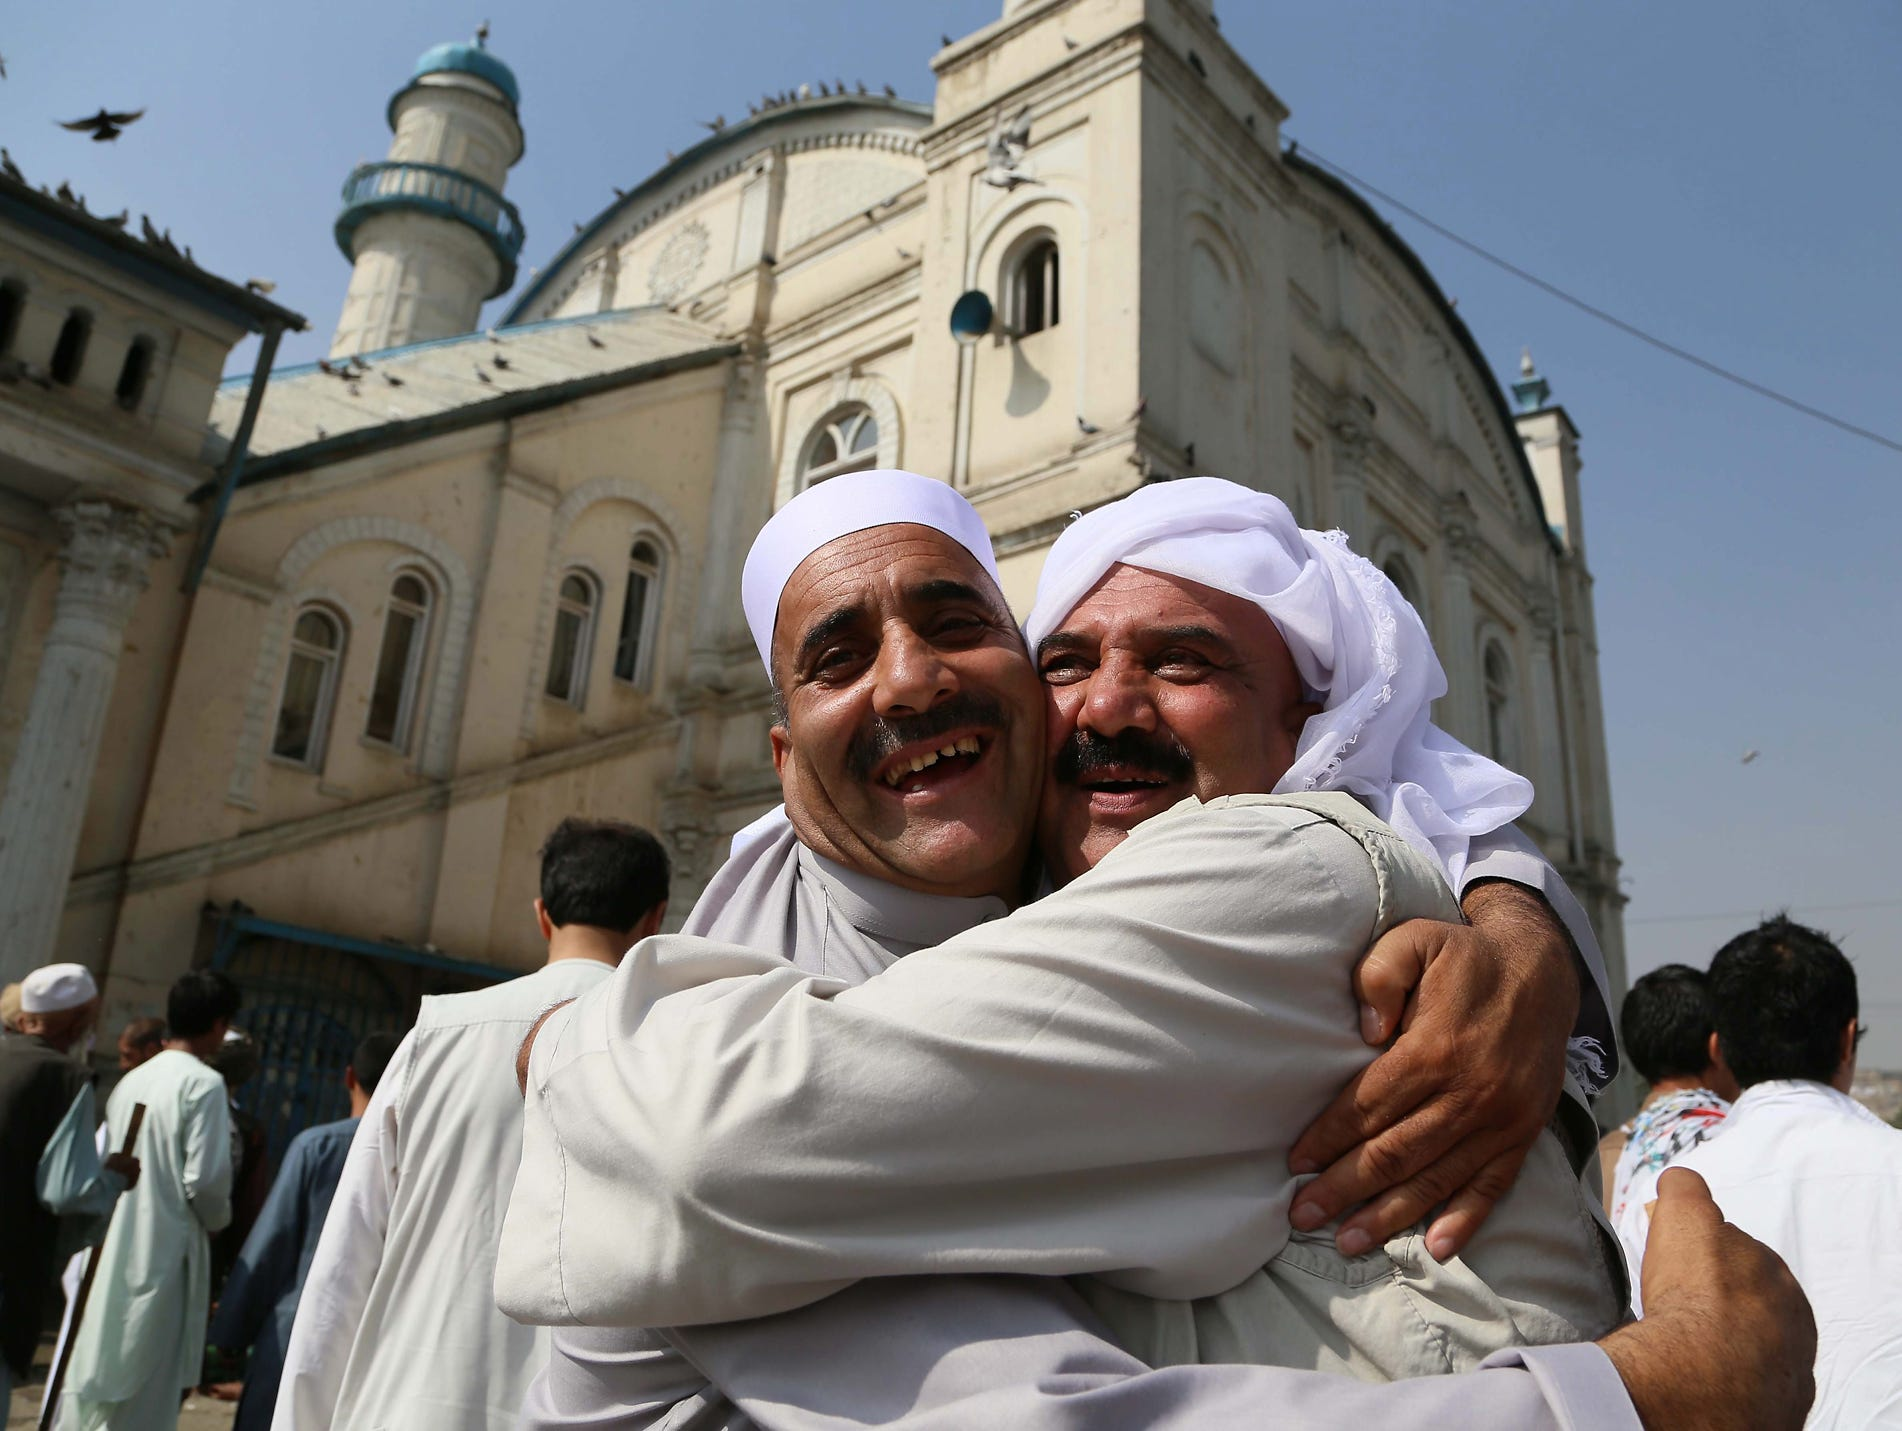 Men greet each other after offering prayers during the Eid al-Fitr celebration on Aug. 8 in Kabul, Afghanistan. Muslims around the world began celebrating the three-day festival of  Eid al-Fitr, which marks the end of the holy fasting month of Ramadan.